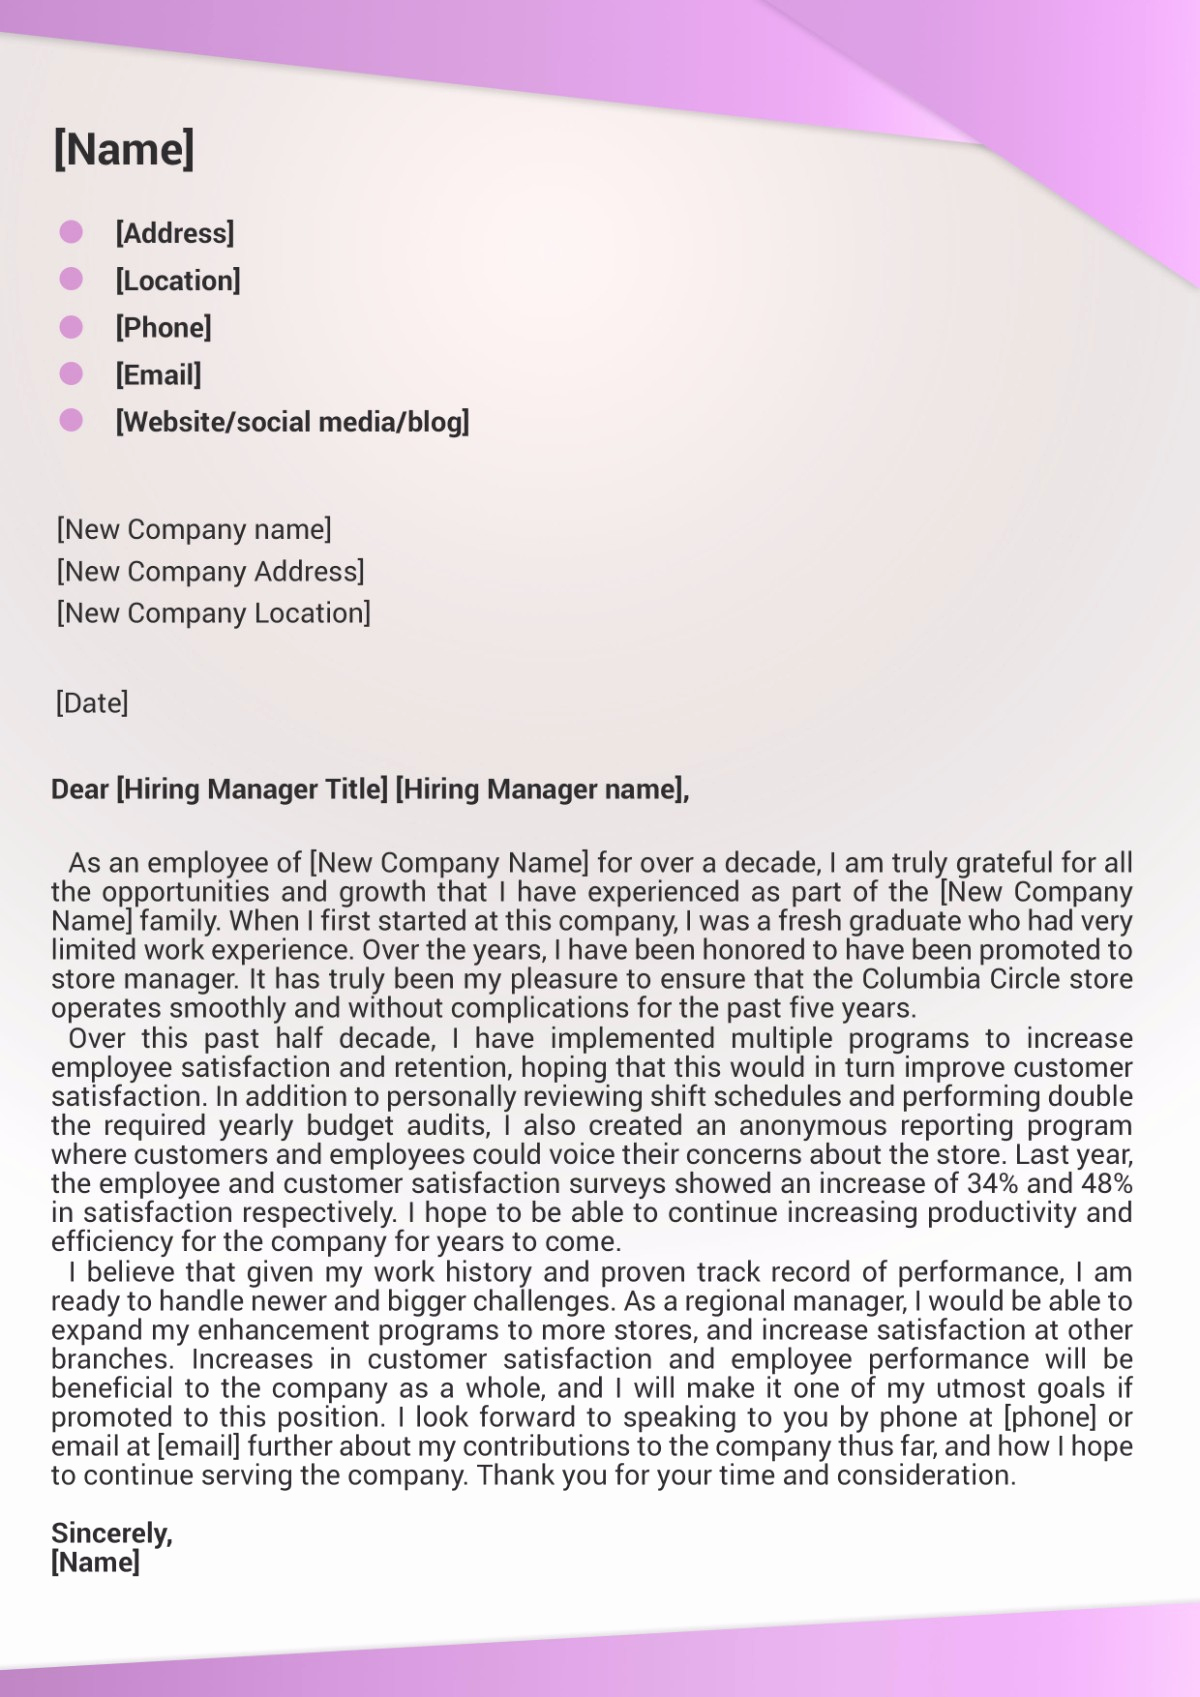 Cover Letter for Promotion Fresh Smart Cover Letter Quickly and Easily